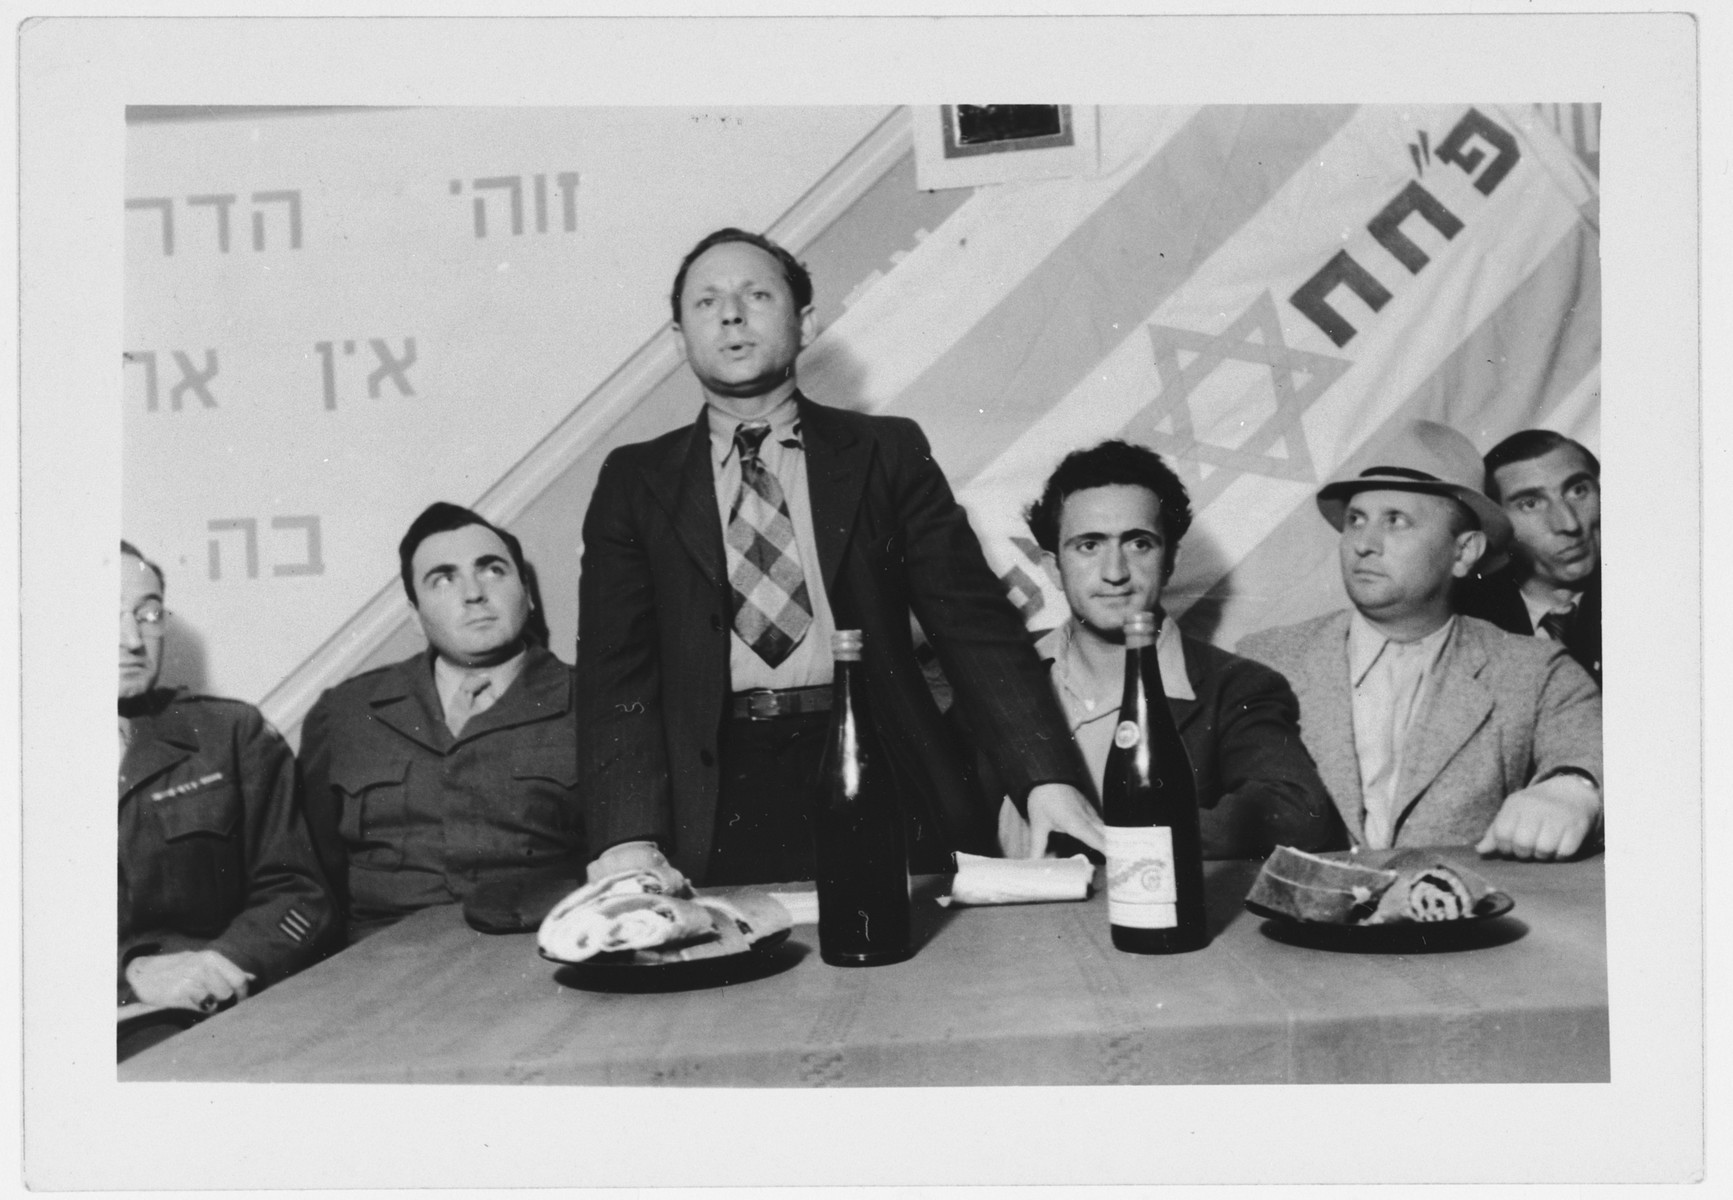 Meeting of the Zionist group, Partizanim-Hayalim-Halutzim, in the Zeilsheim displaced persons' camp.